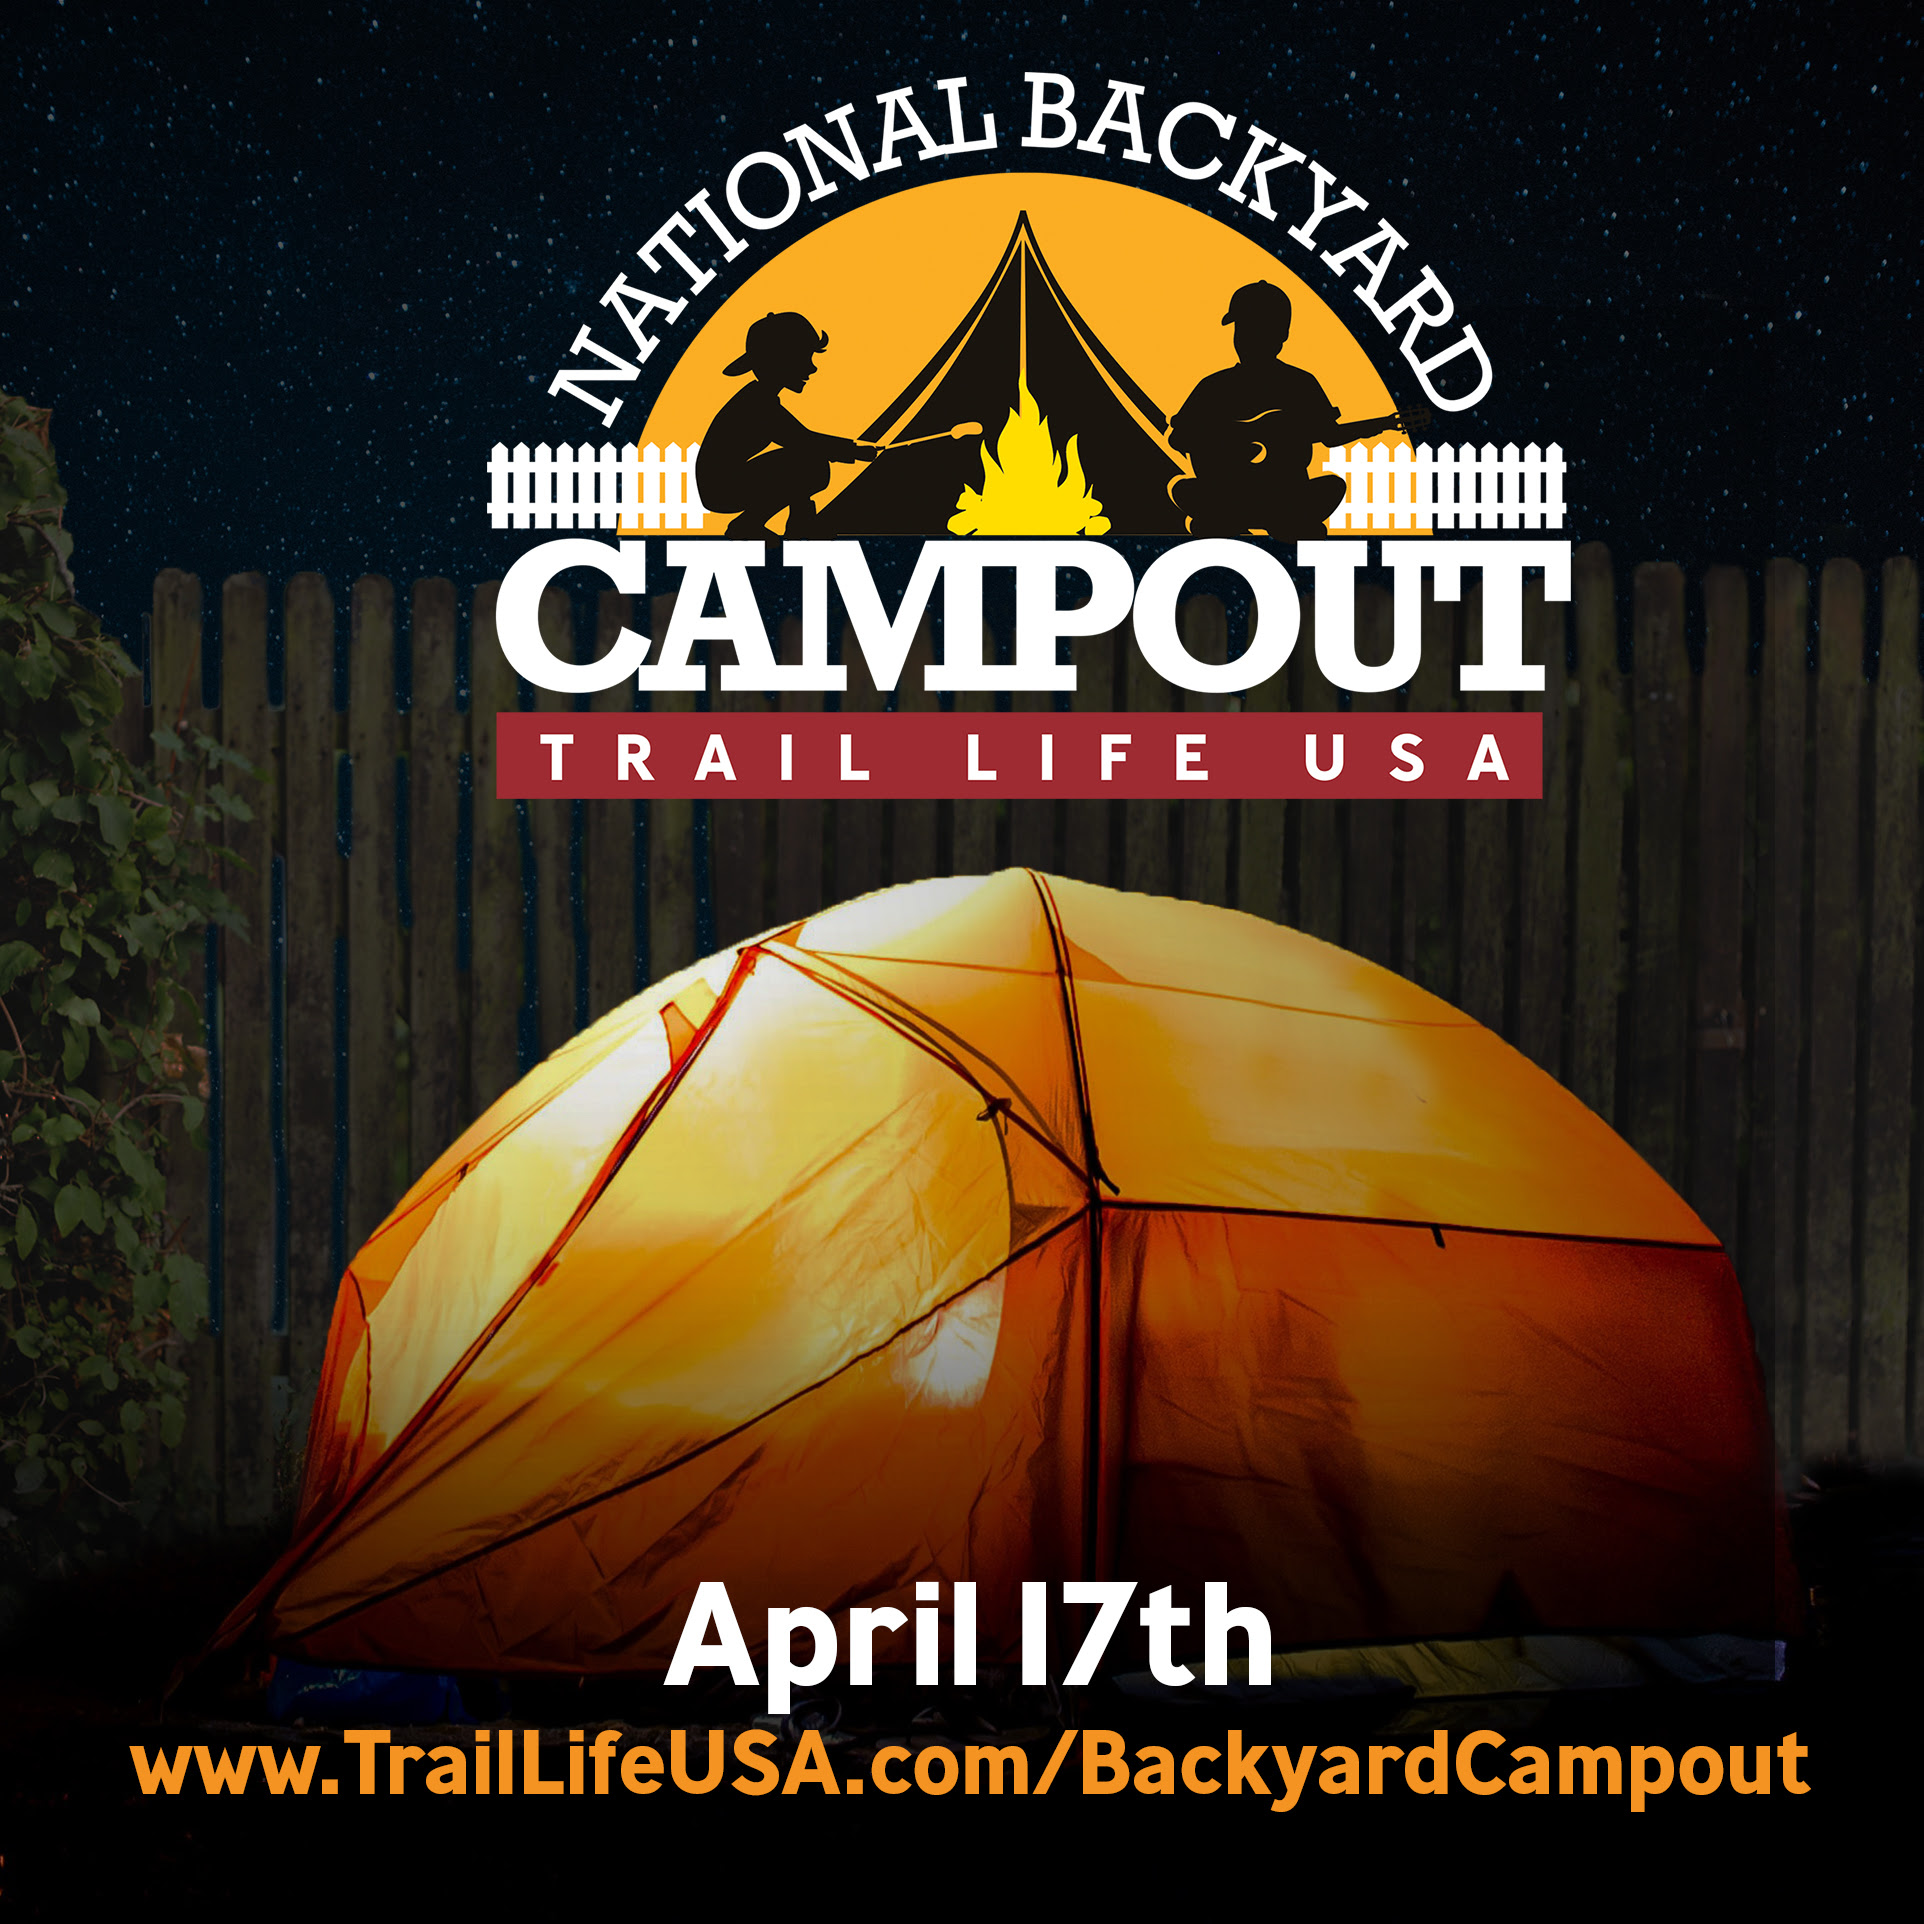 National Backyard Campout Updated Square.jpg